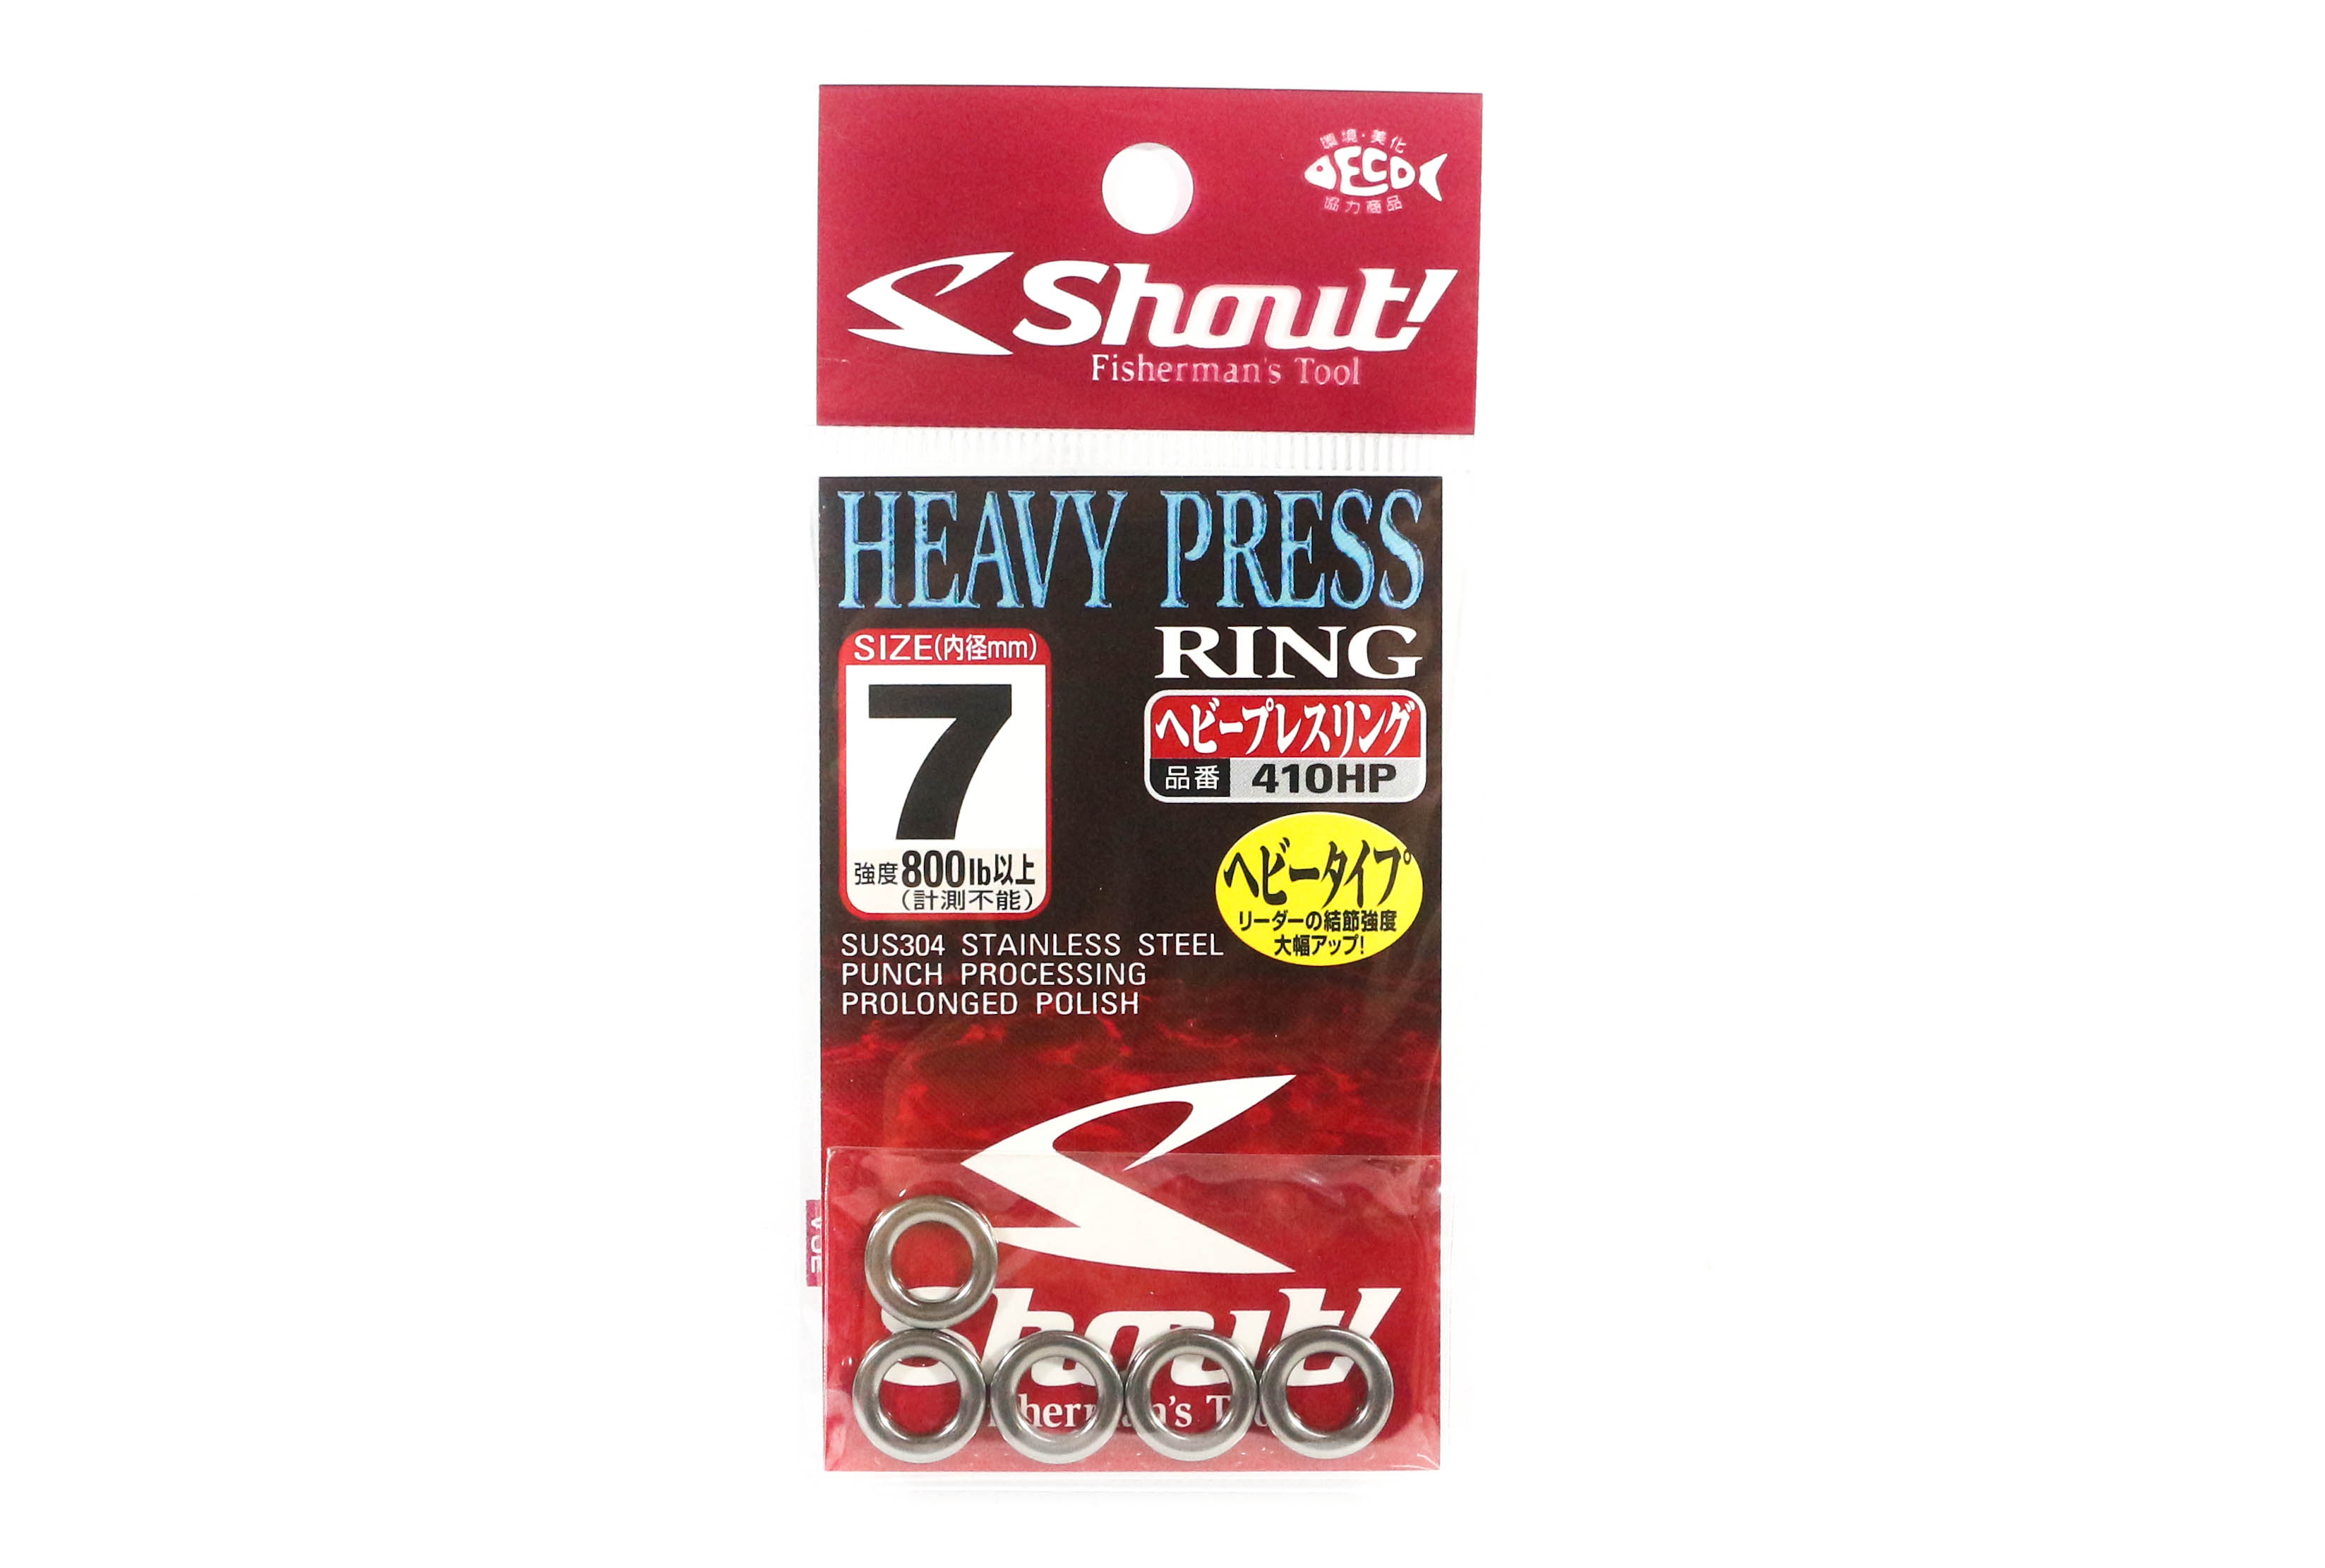 Shout 410-HP Heavy Press Ring Heavy Duty Solid Ring Size 7 mm (5764)